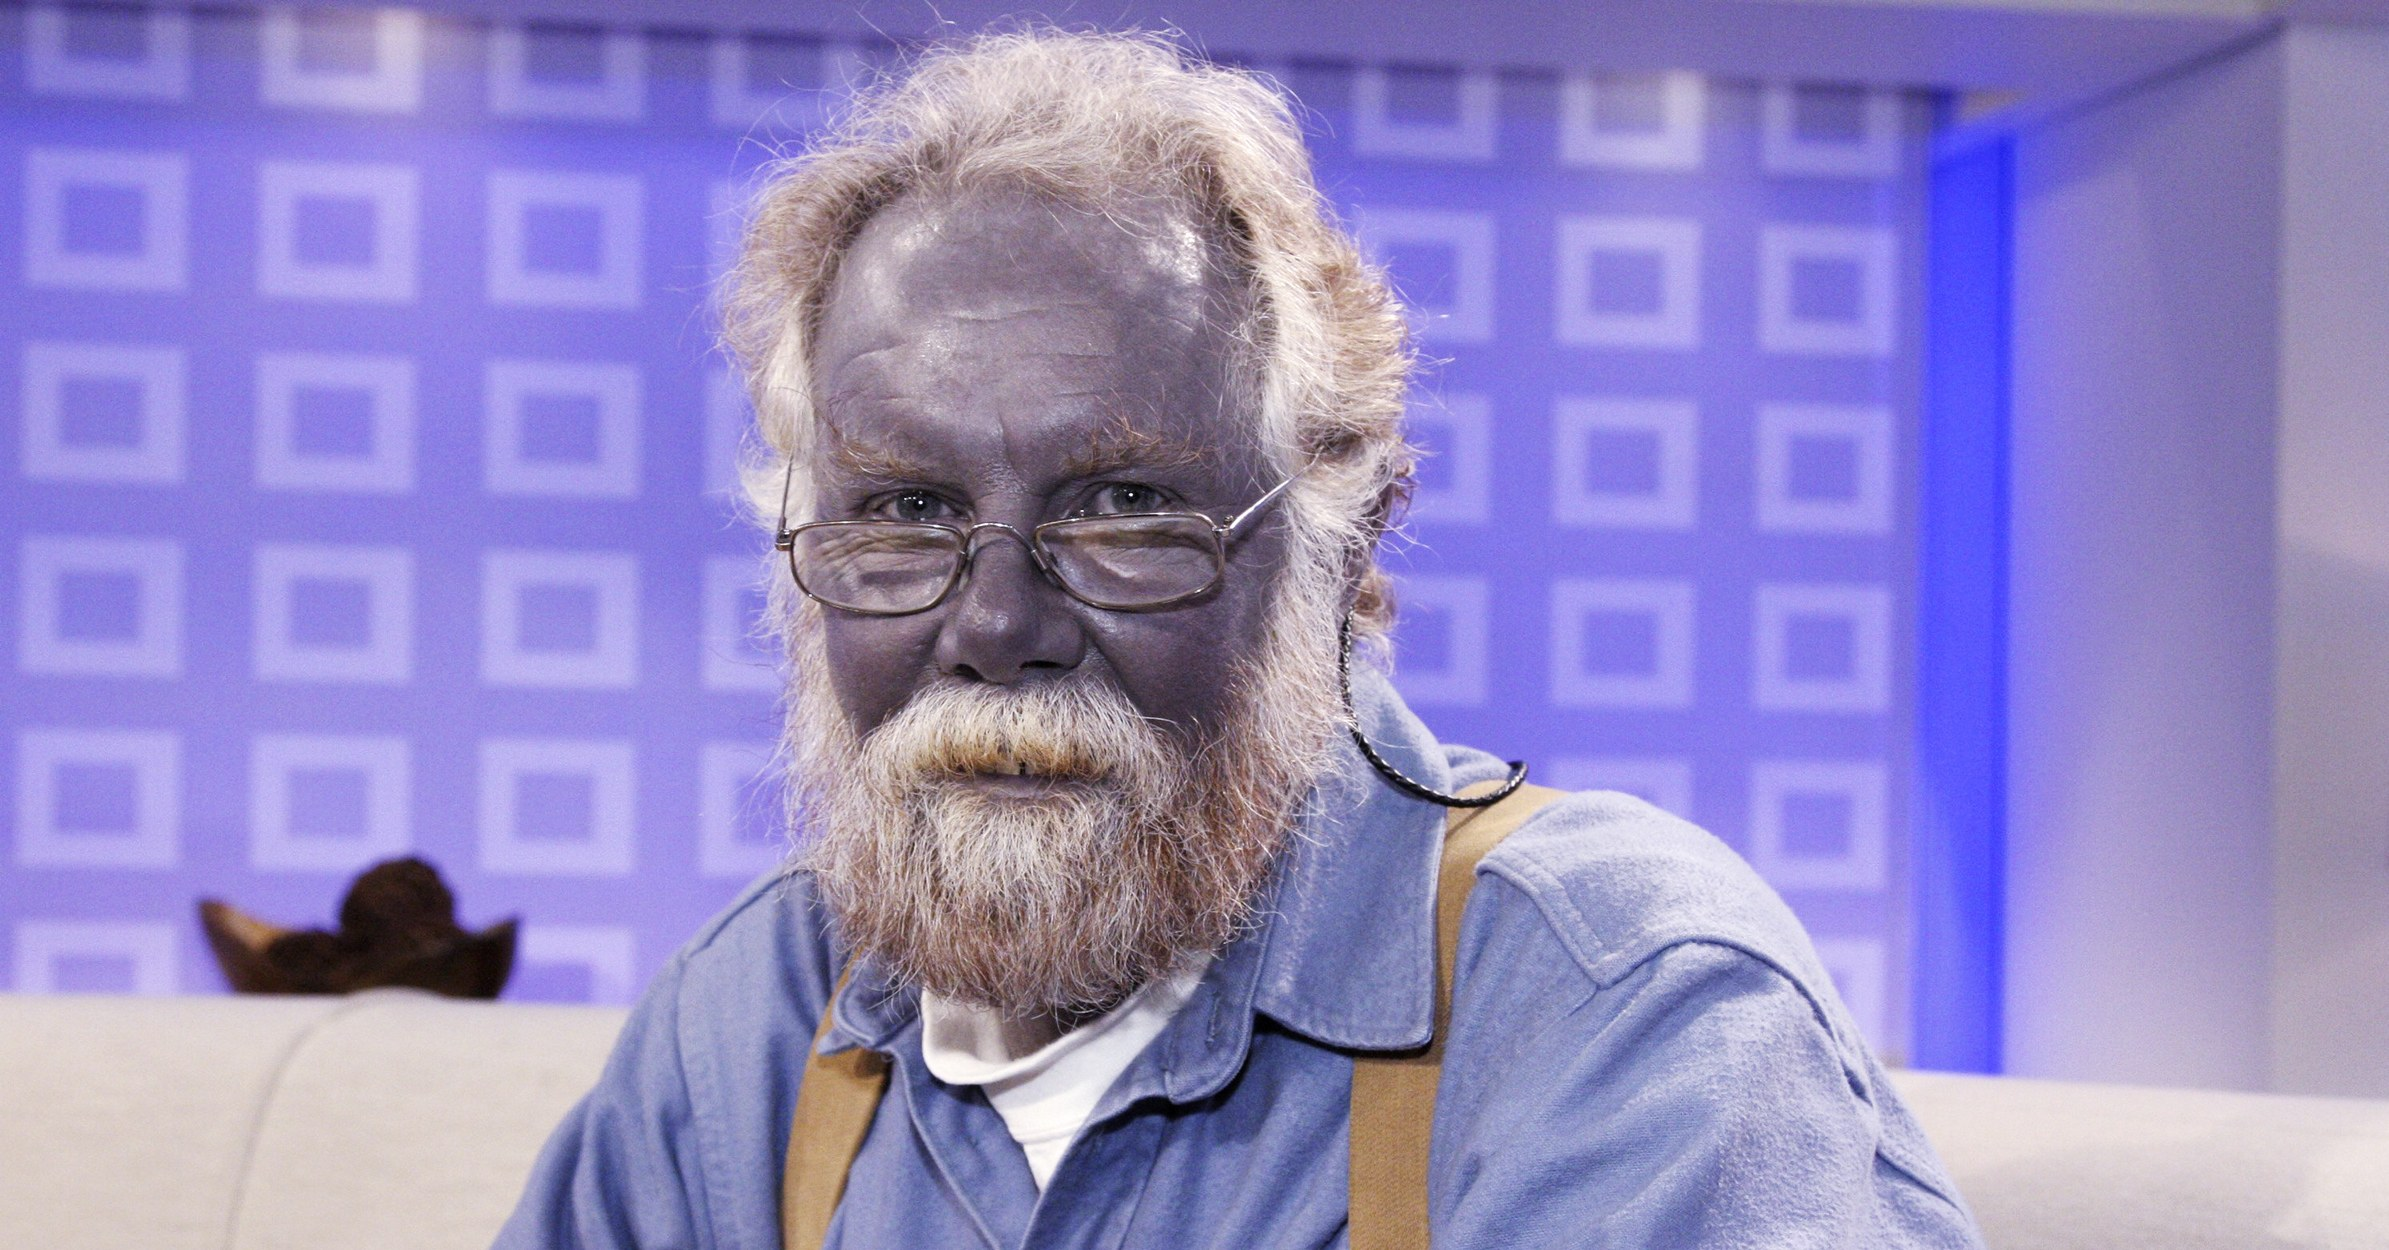 Colloidal Silver Turns You Blue—But Does It Work?